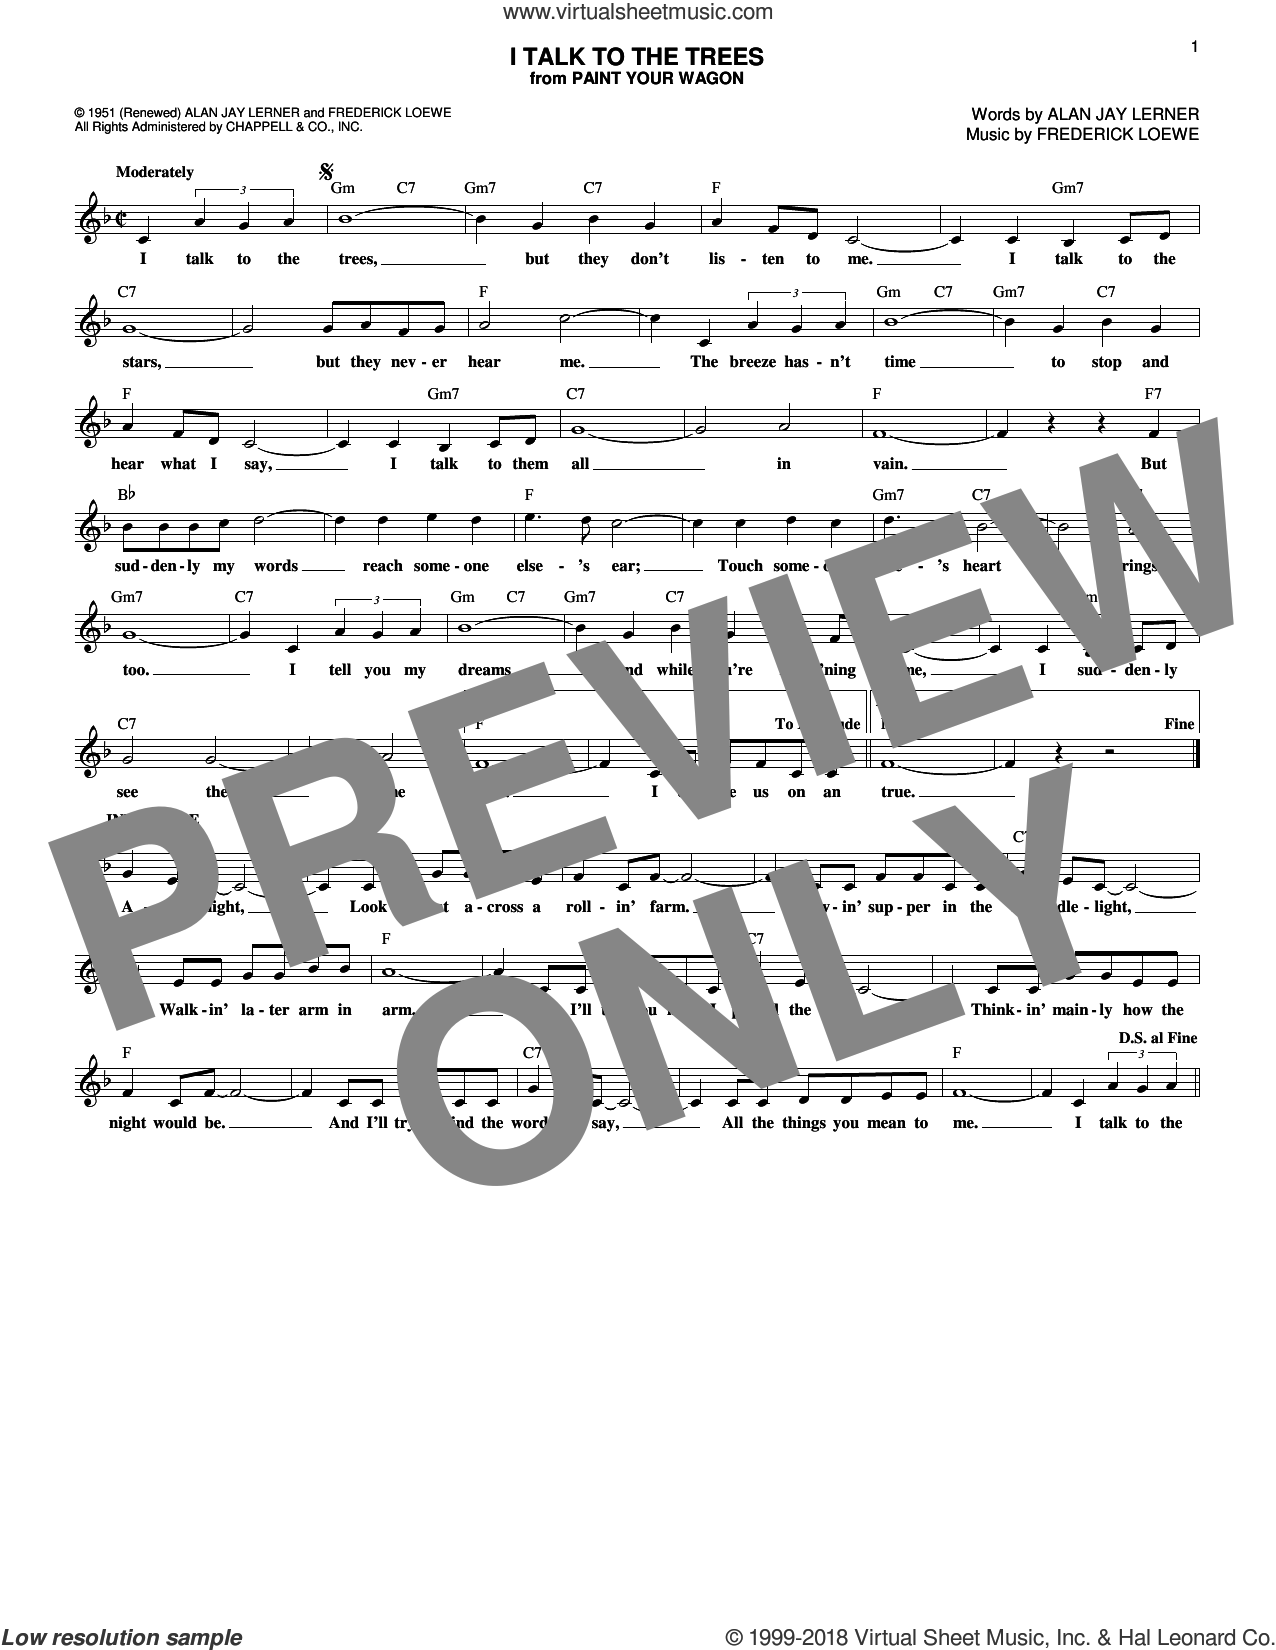 I Talk To The Trees sheet music for voice and other instruments (fake book) by Alan Jay Lerner and Frederick Loewe, intermediate skill level